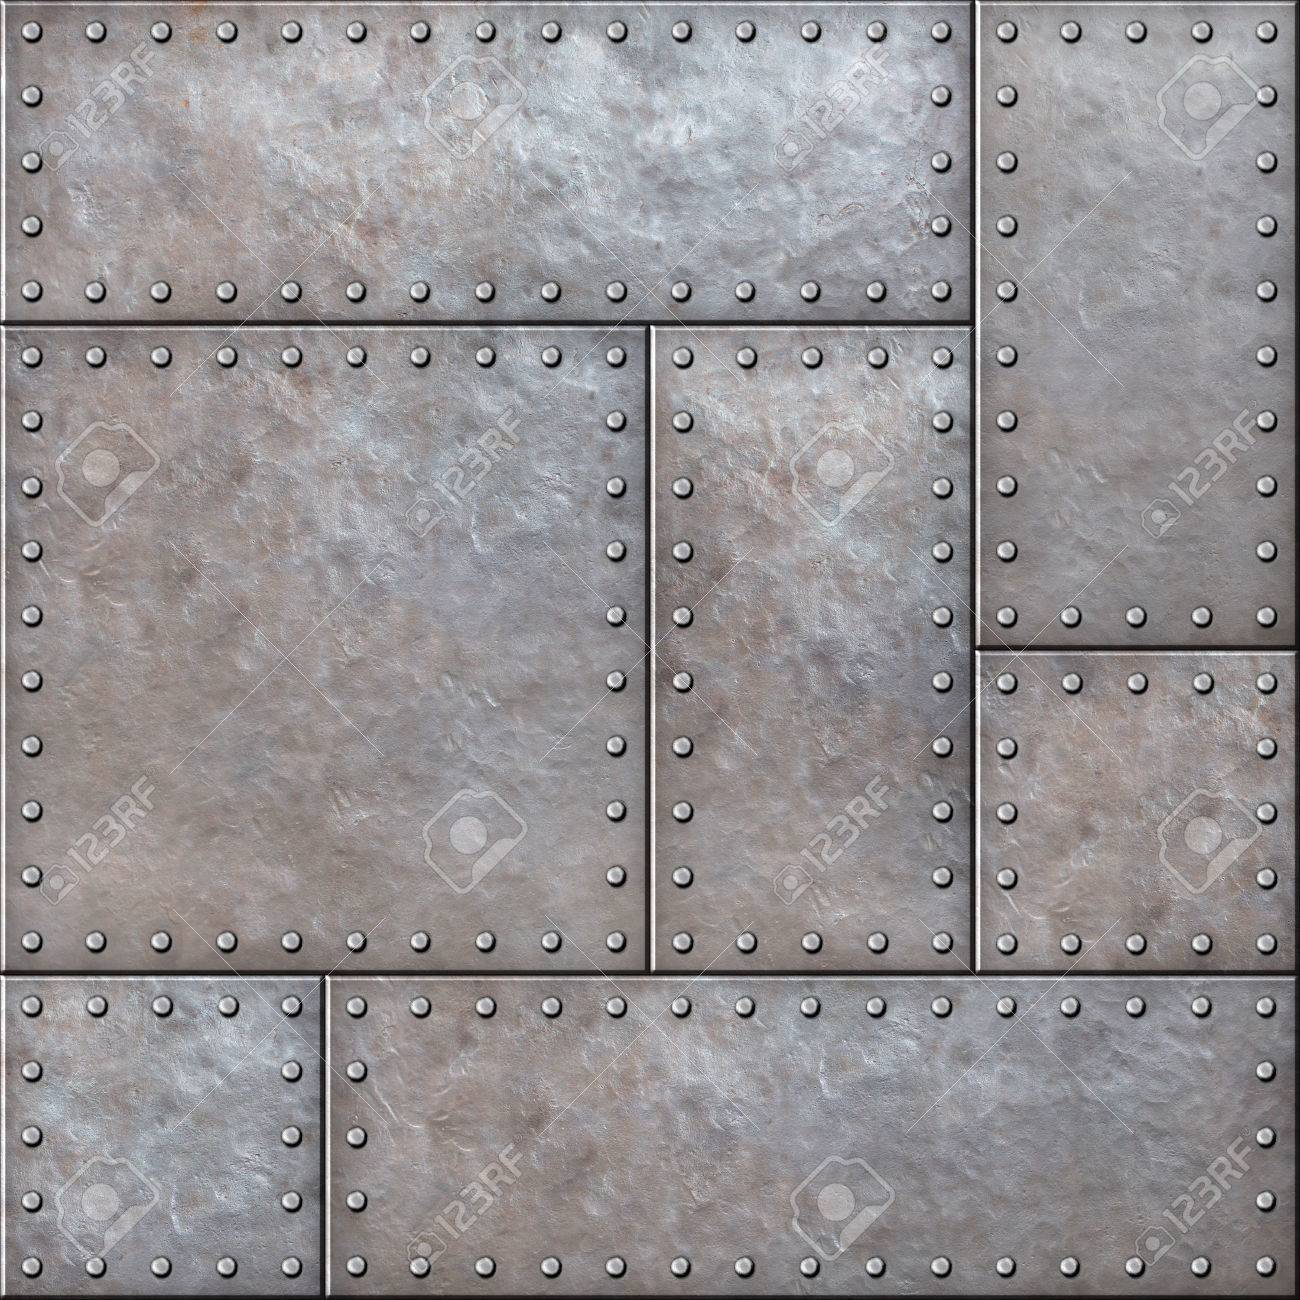 Old Rustic Metal Plates With Rivets Seamless Background Or Texture Stock Photo